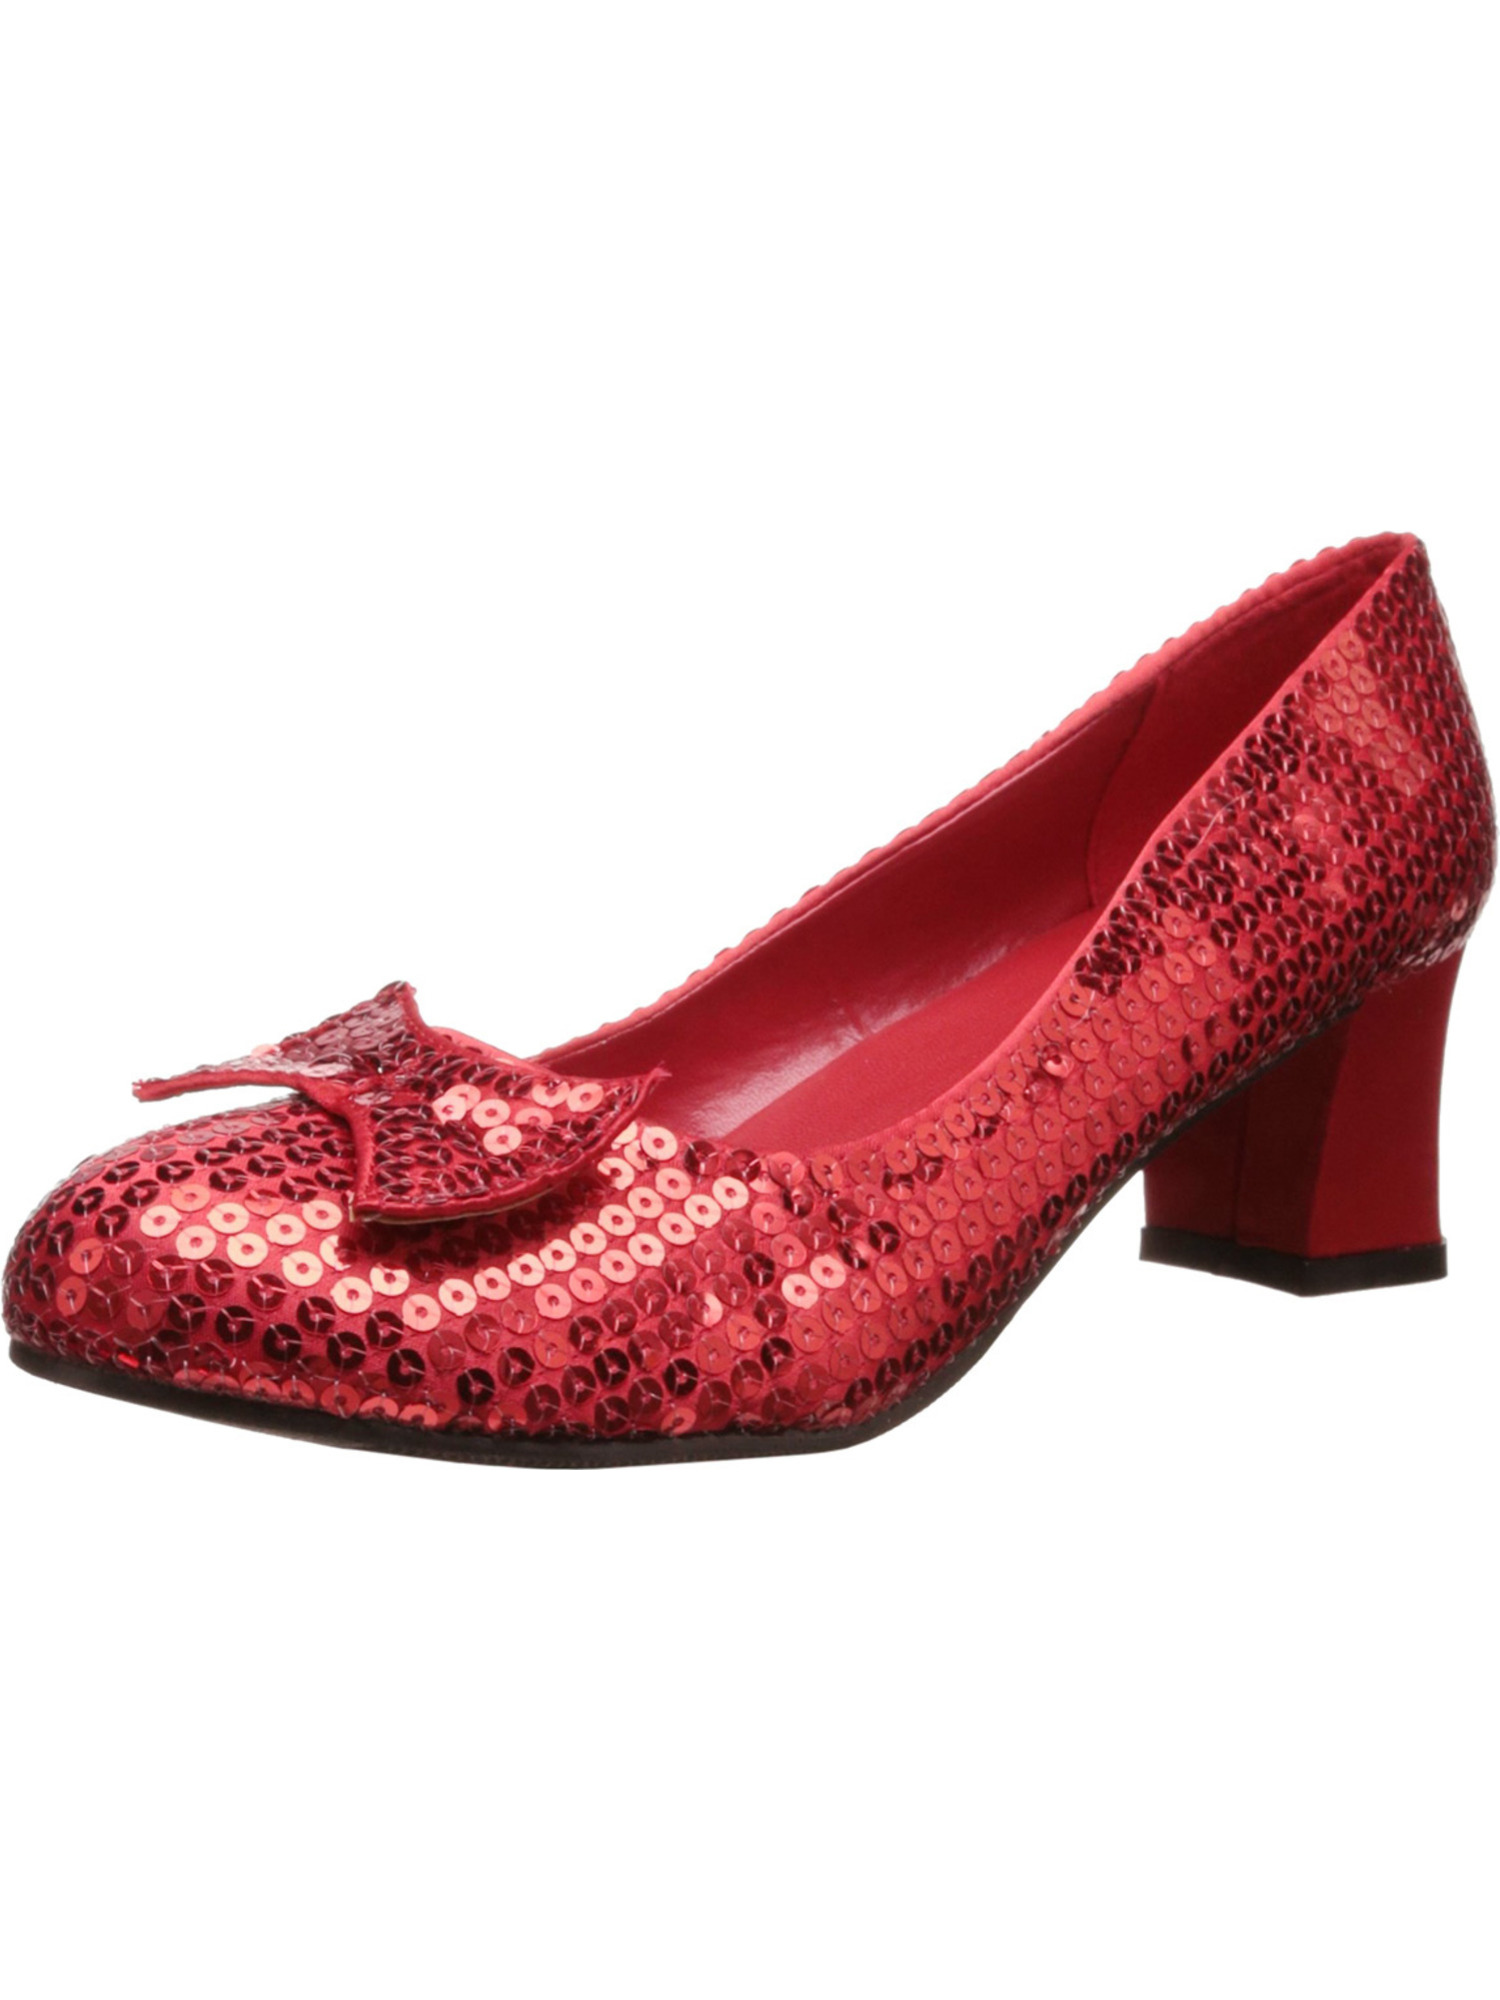 Womens Costume Shoes Sequins Red Ruby Slippers